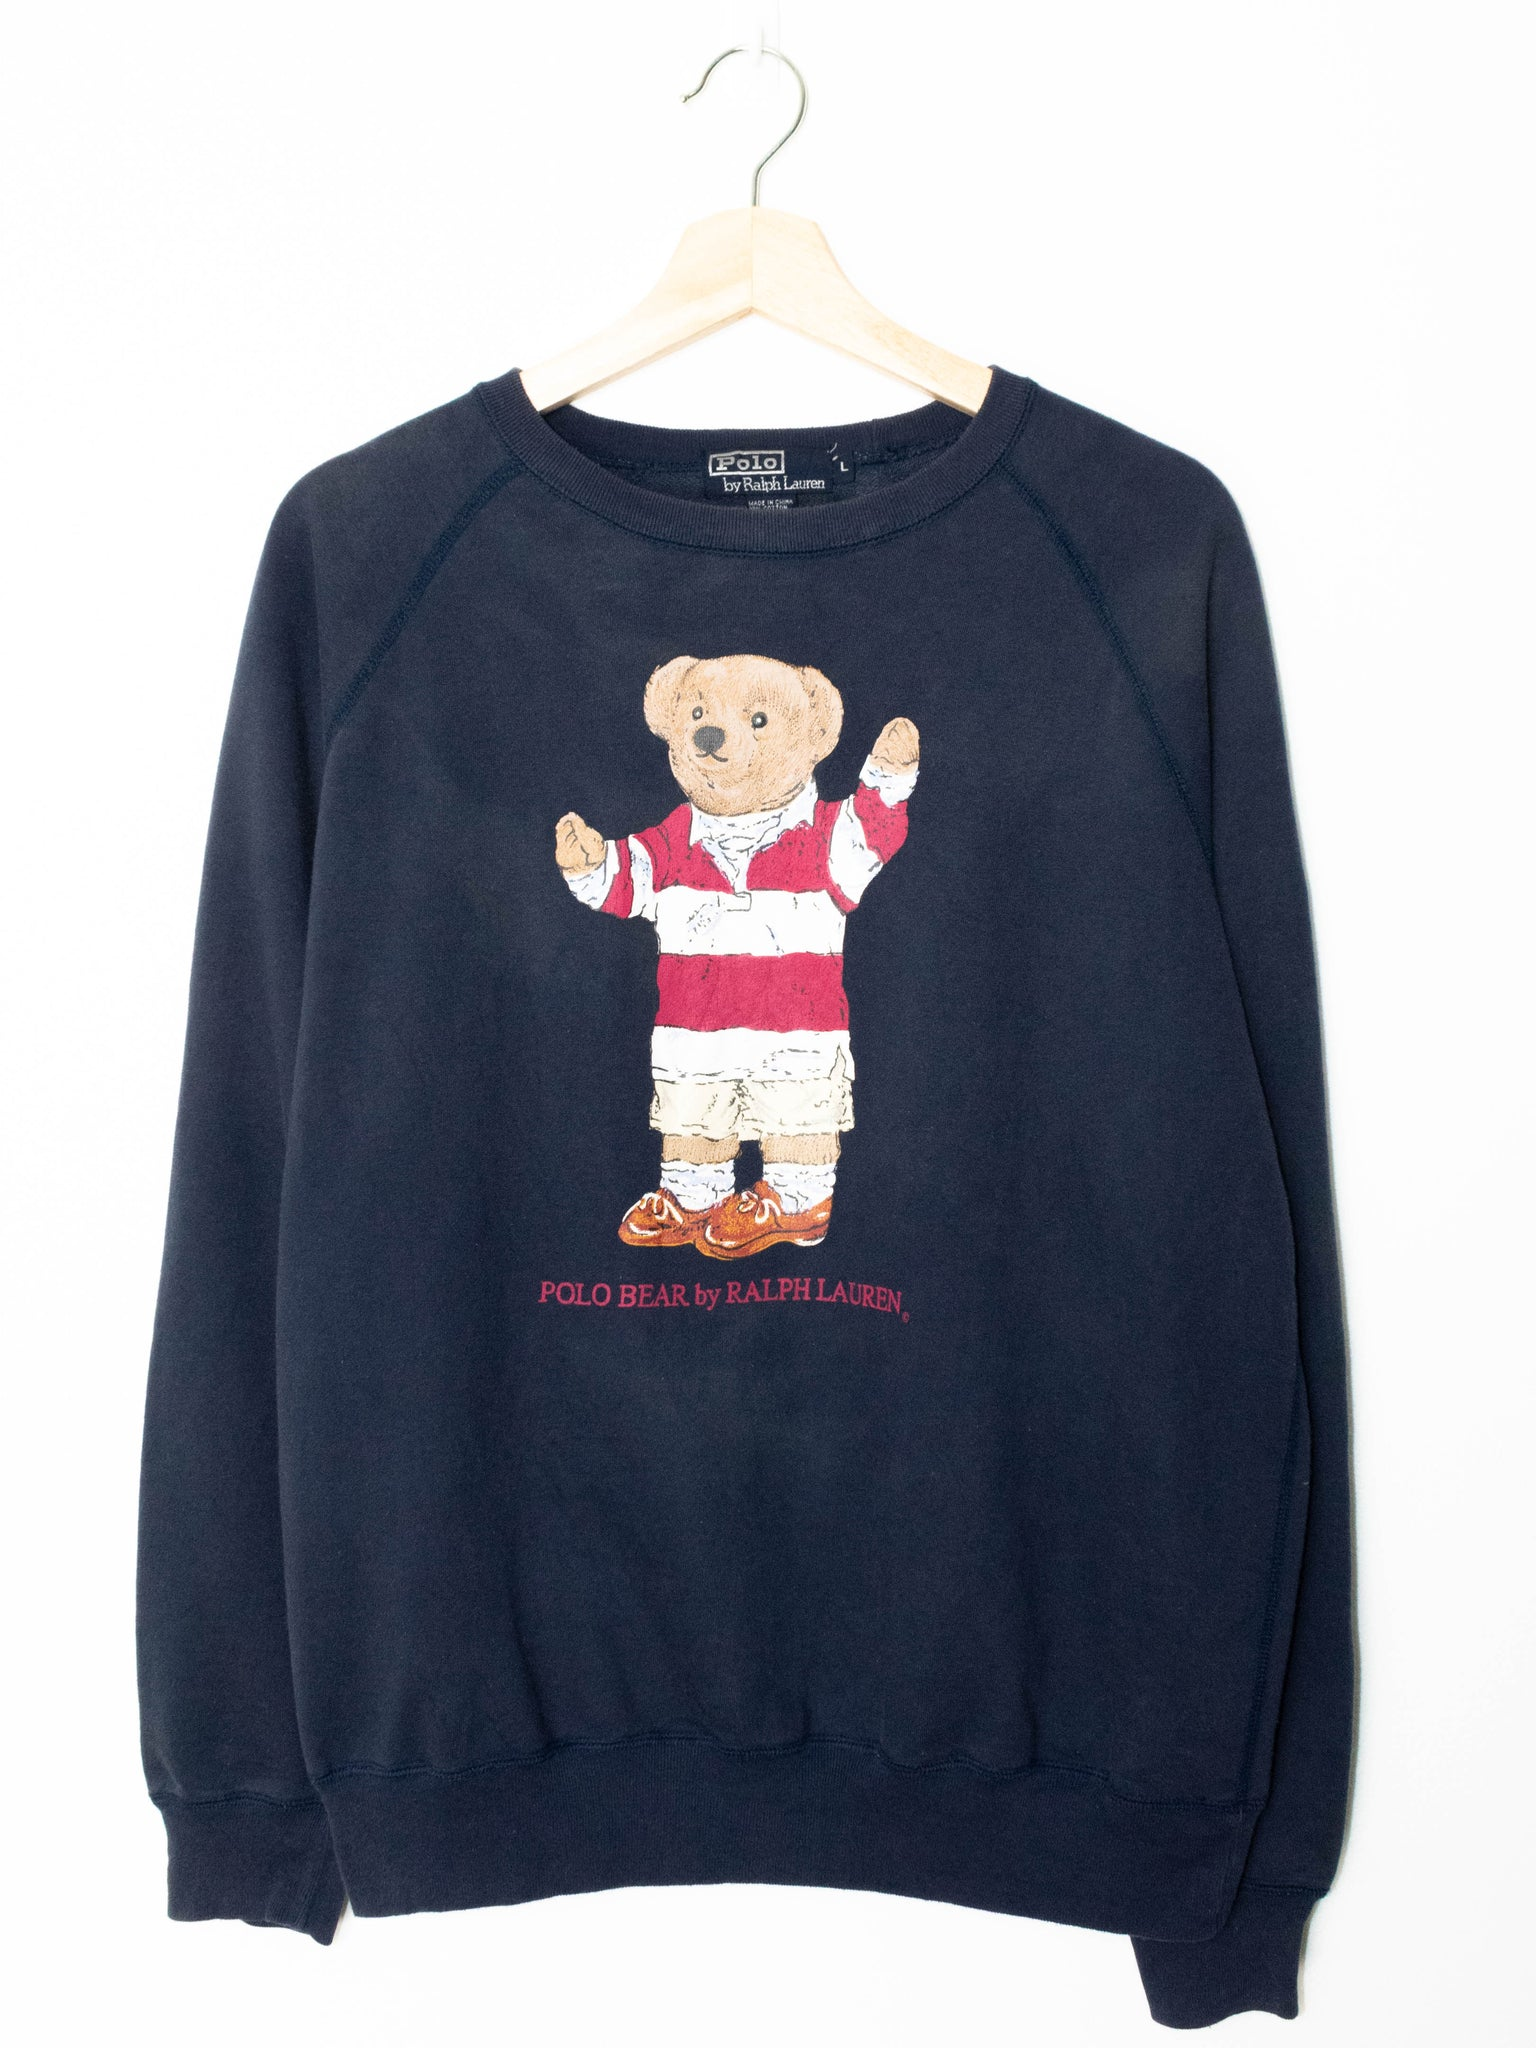 Vintage Polo Bear Ralph Lauren sweater size: M